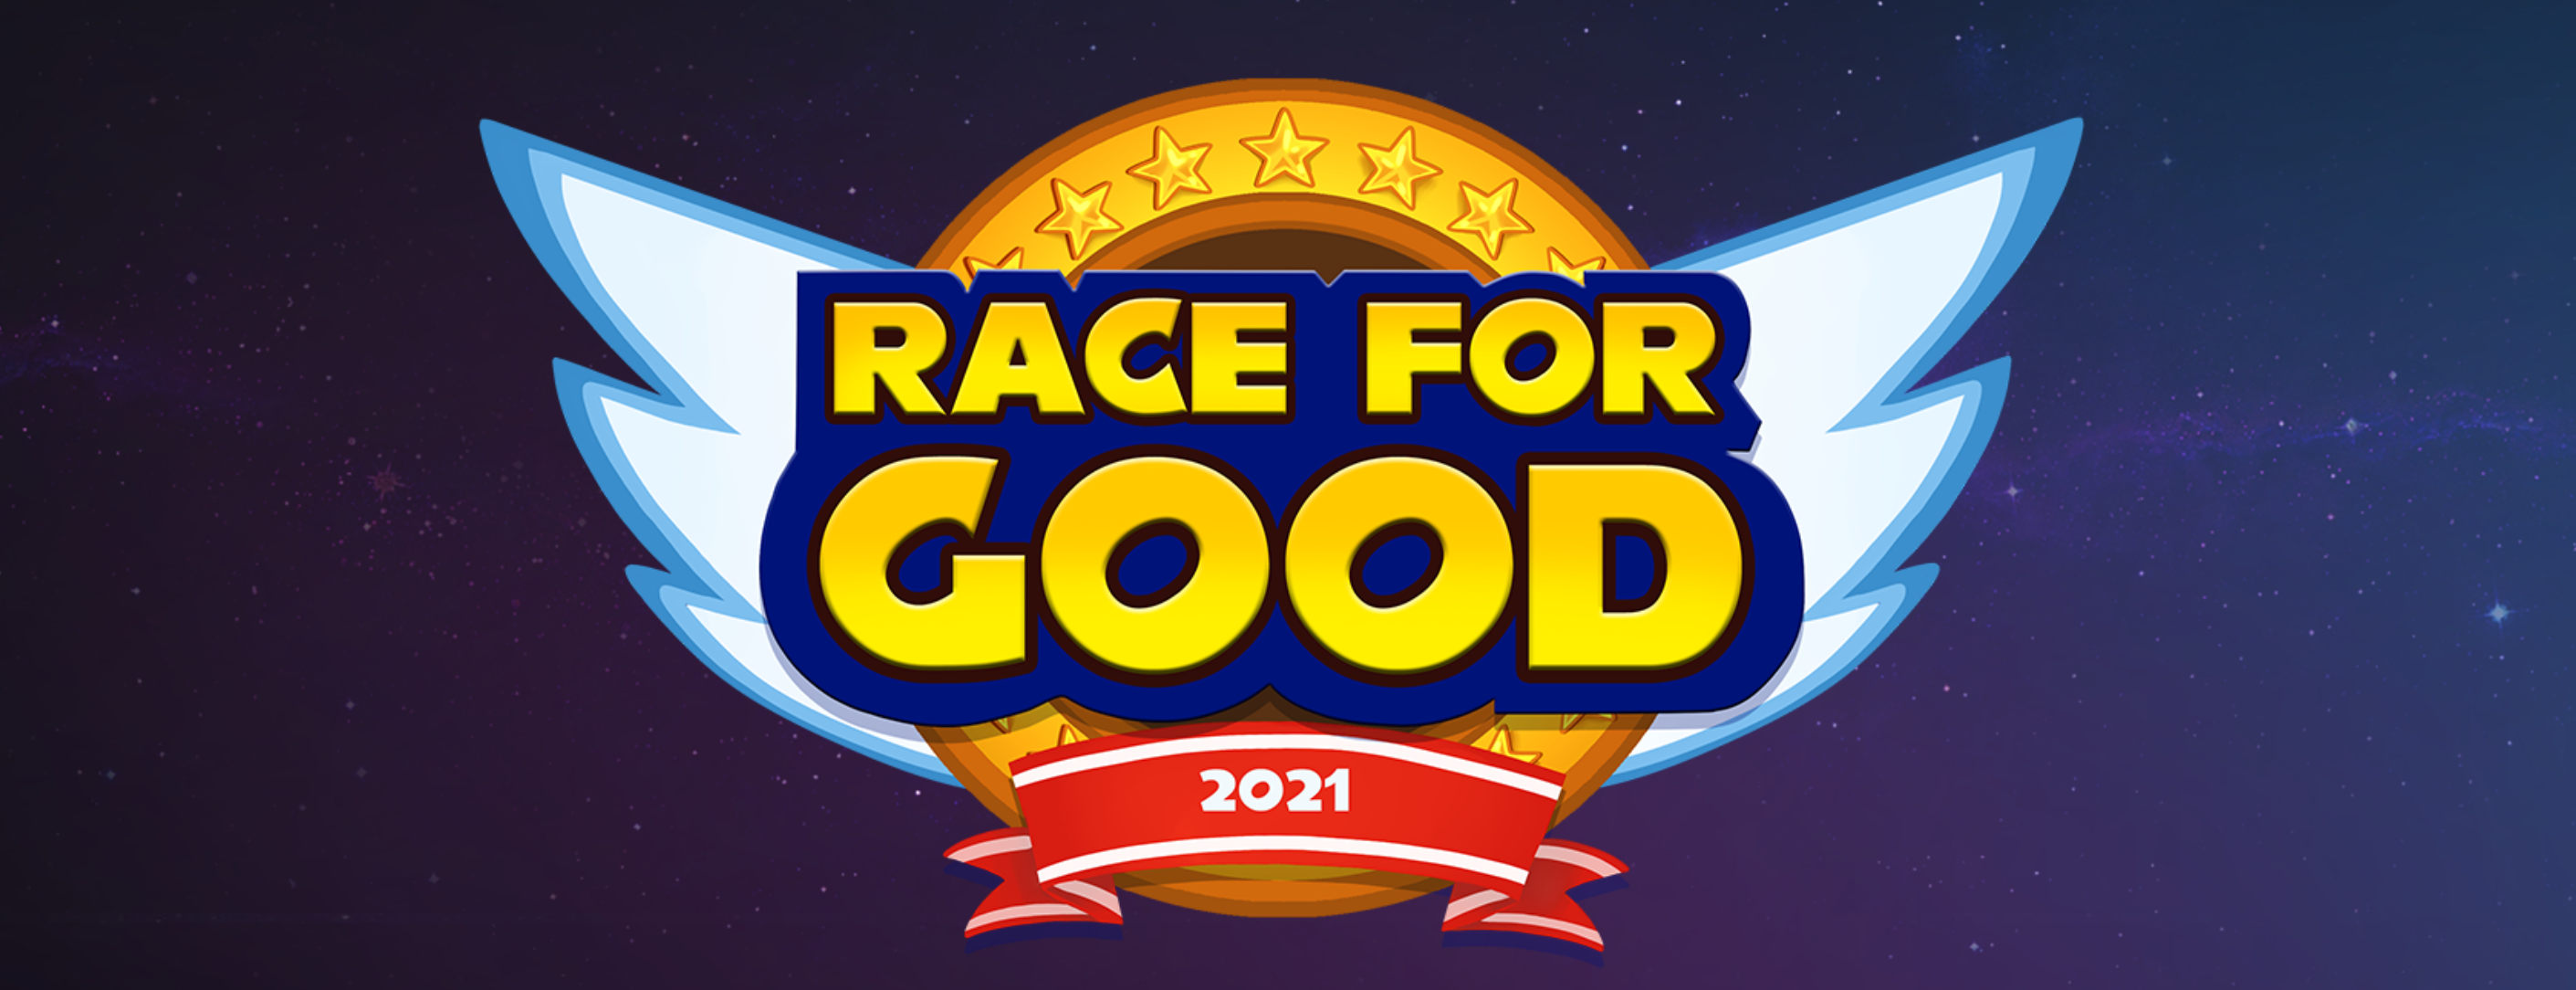 Race for Good 2021